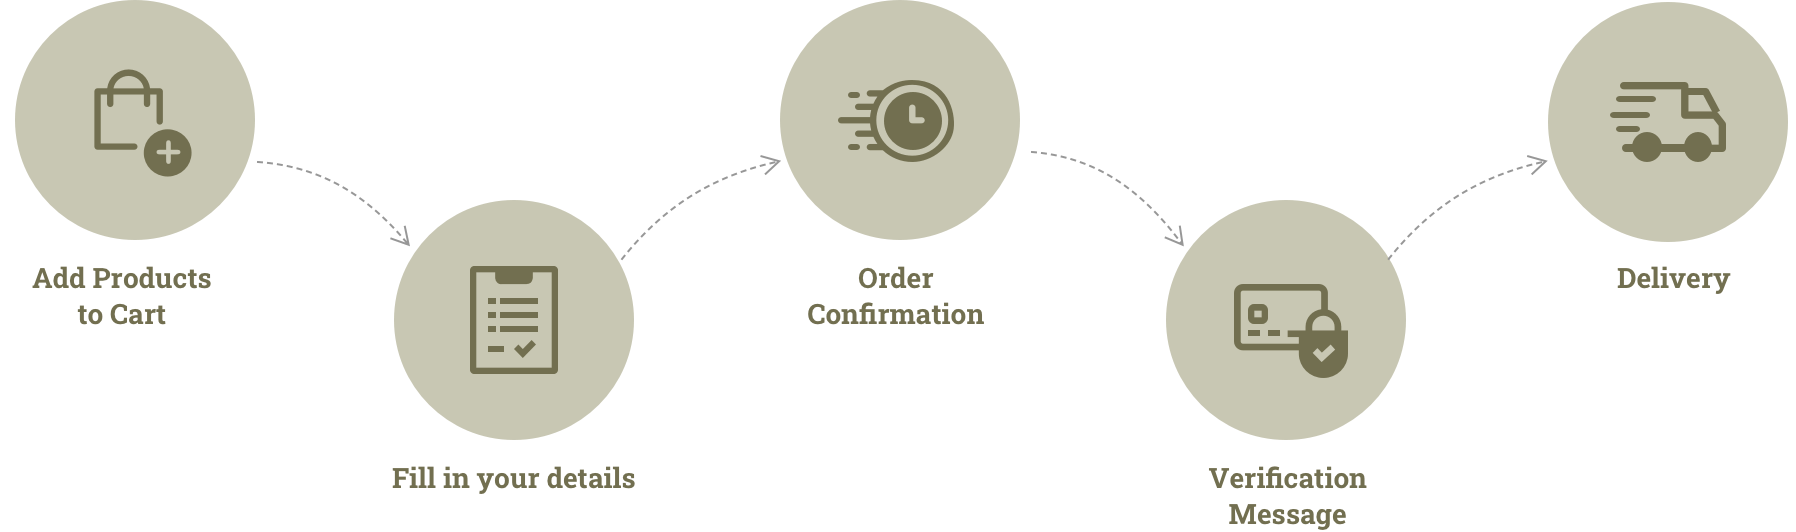 fresno-order-process-section-img